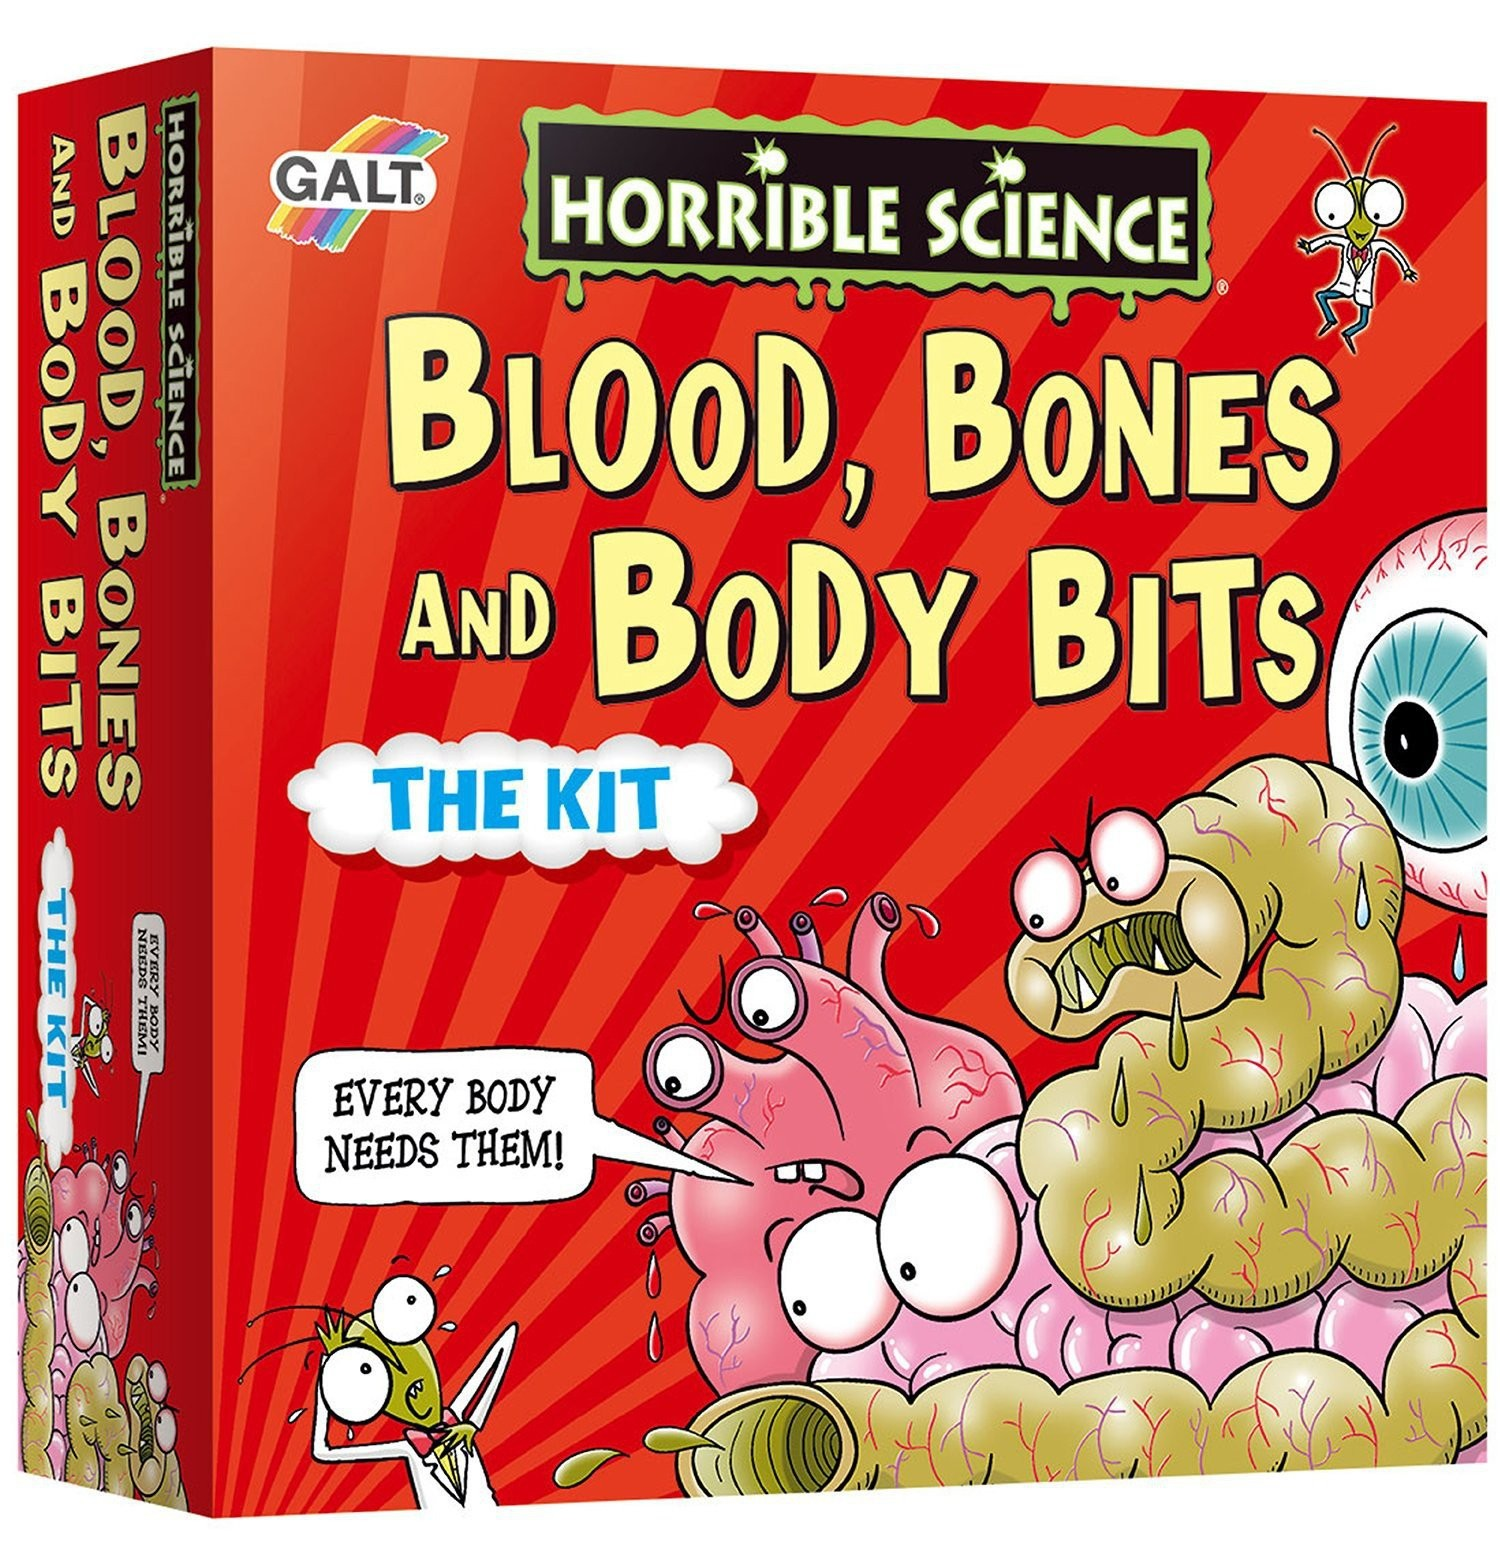 Galt Blood, Bones and Body Bits